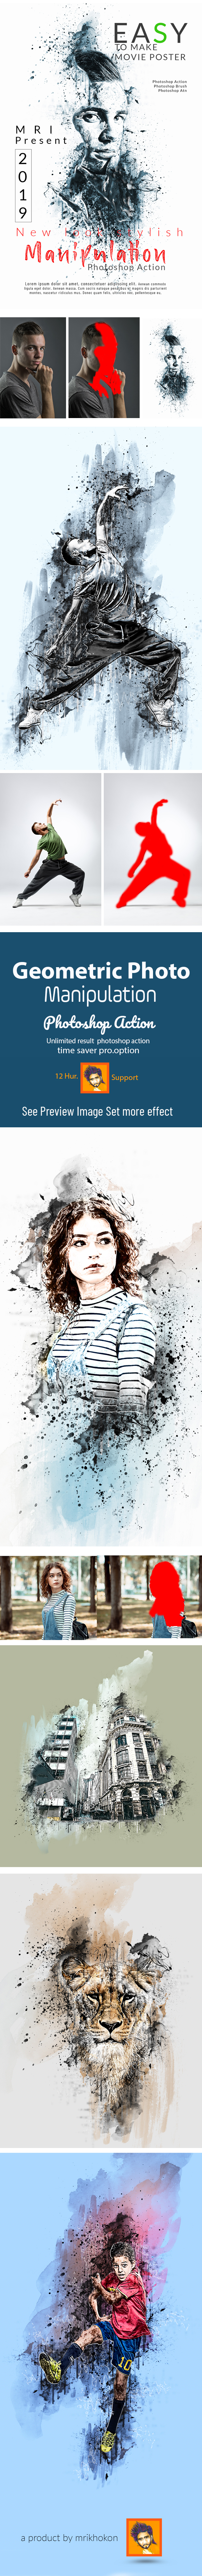 Photoshop Actions from GraphicRiver